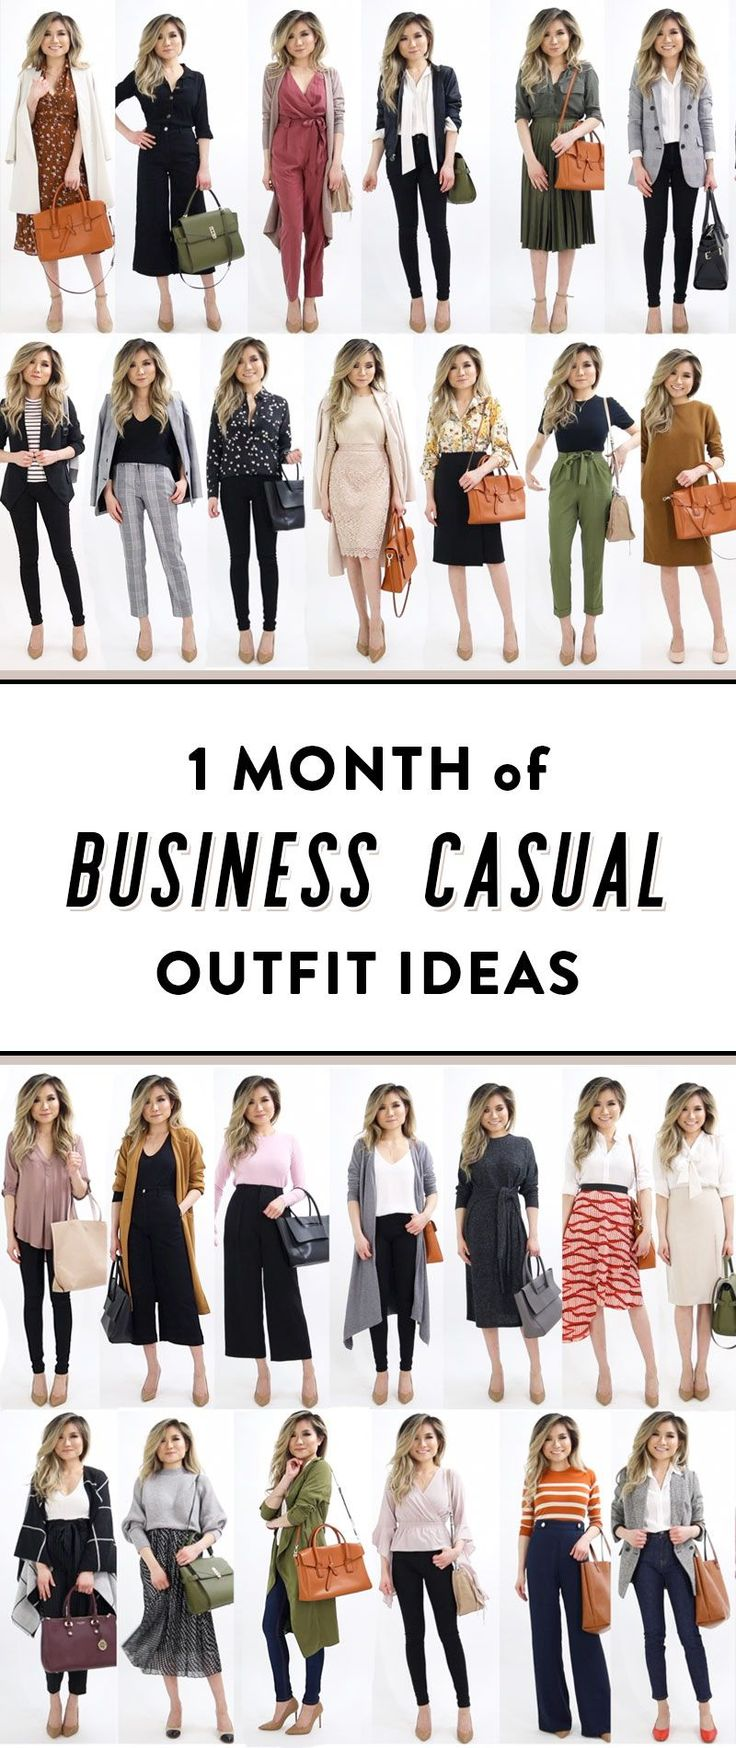 1 MONTH of Business Casual outfits for women. 20 office casual work outfits that will keep you inspired everyday of the month.